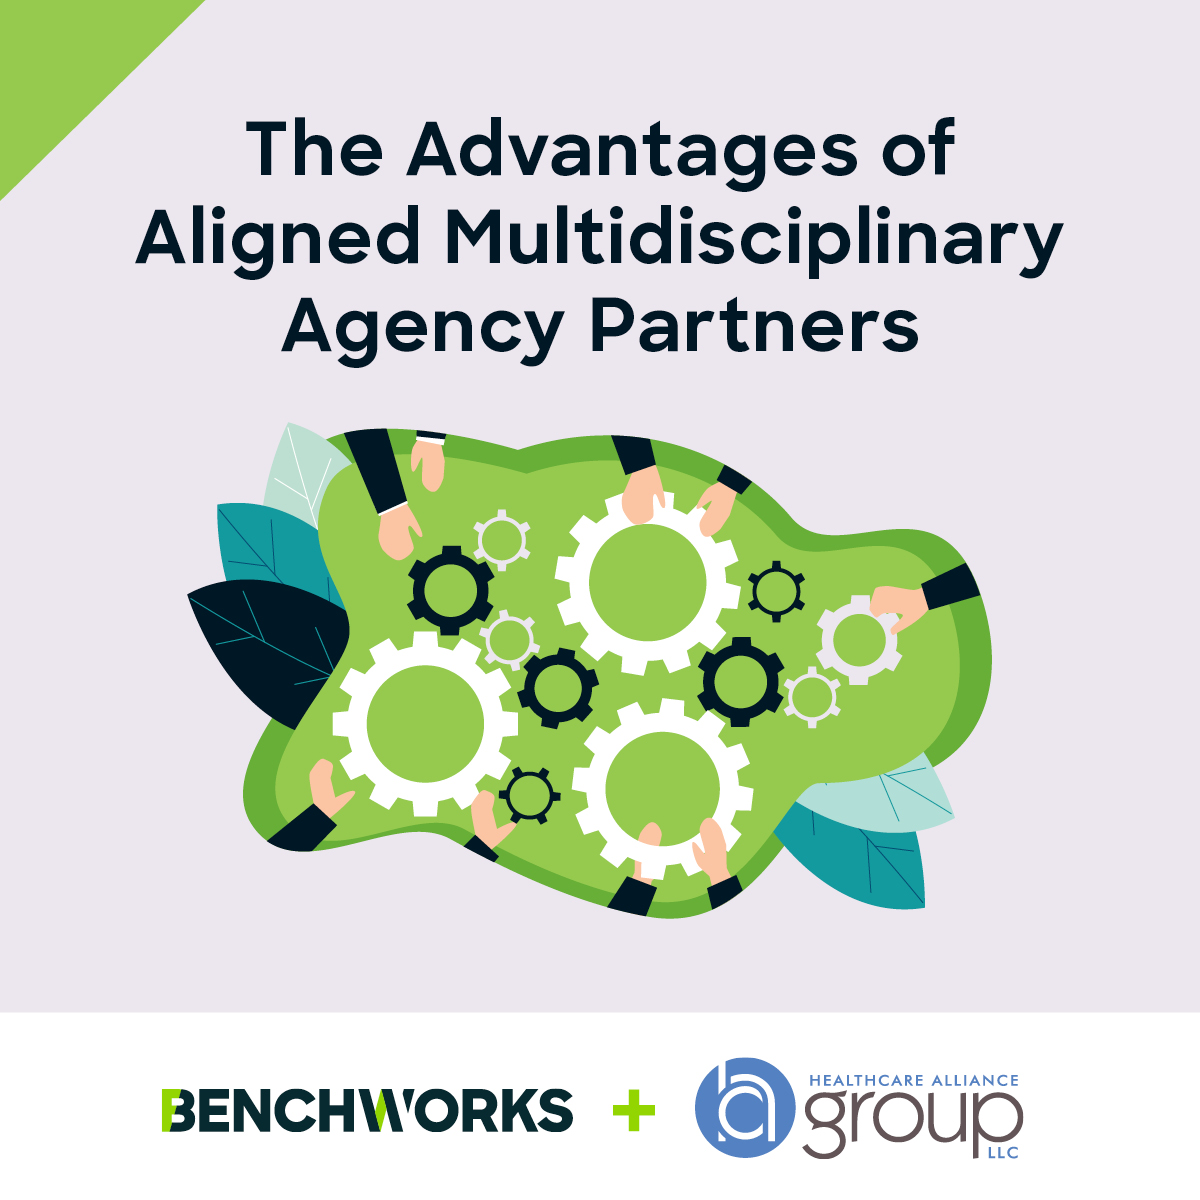 A multidisciplinary partnership that reduces churn & fosters effective results